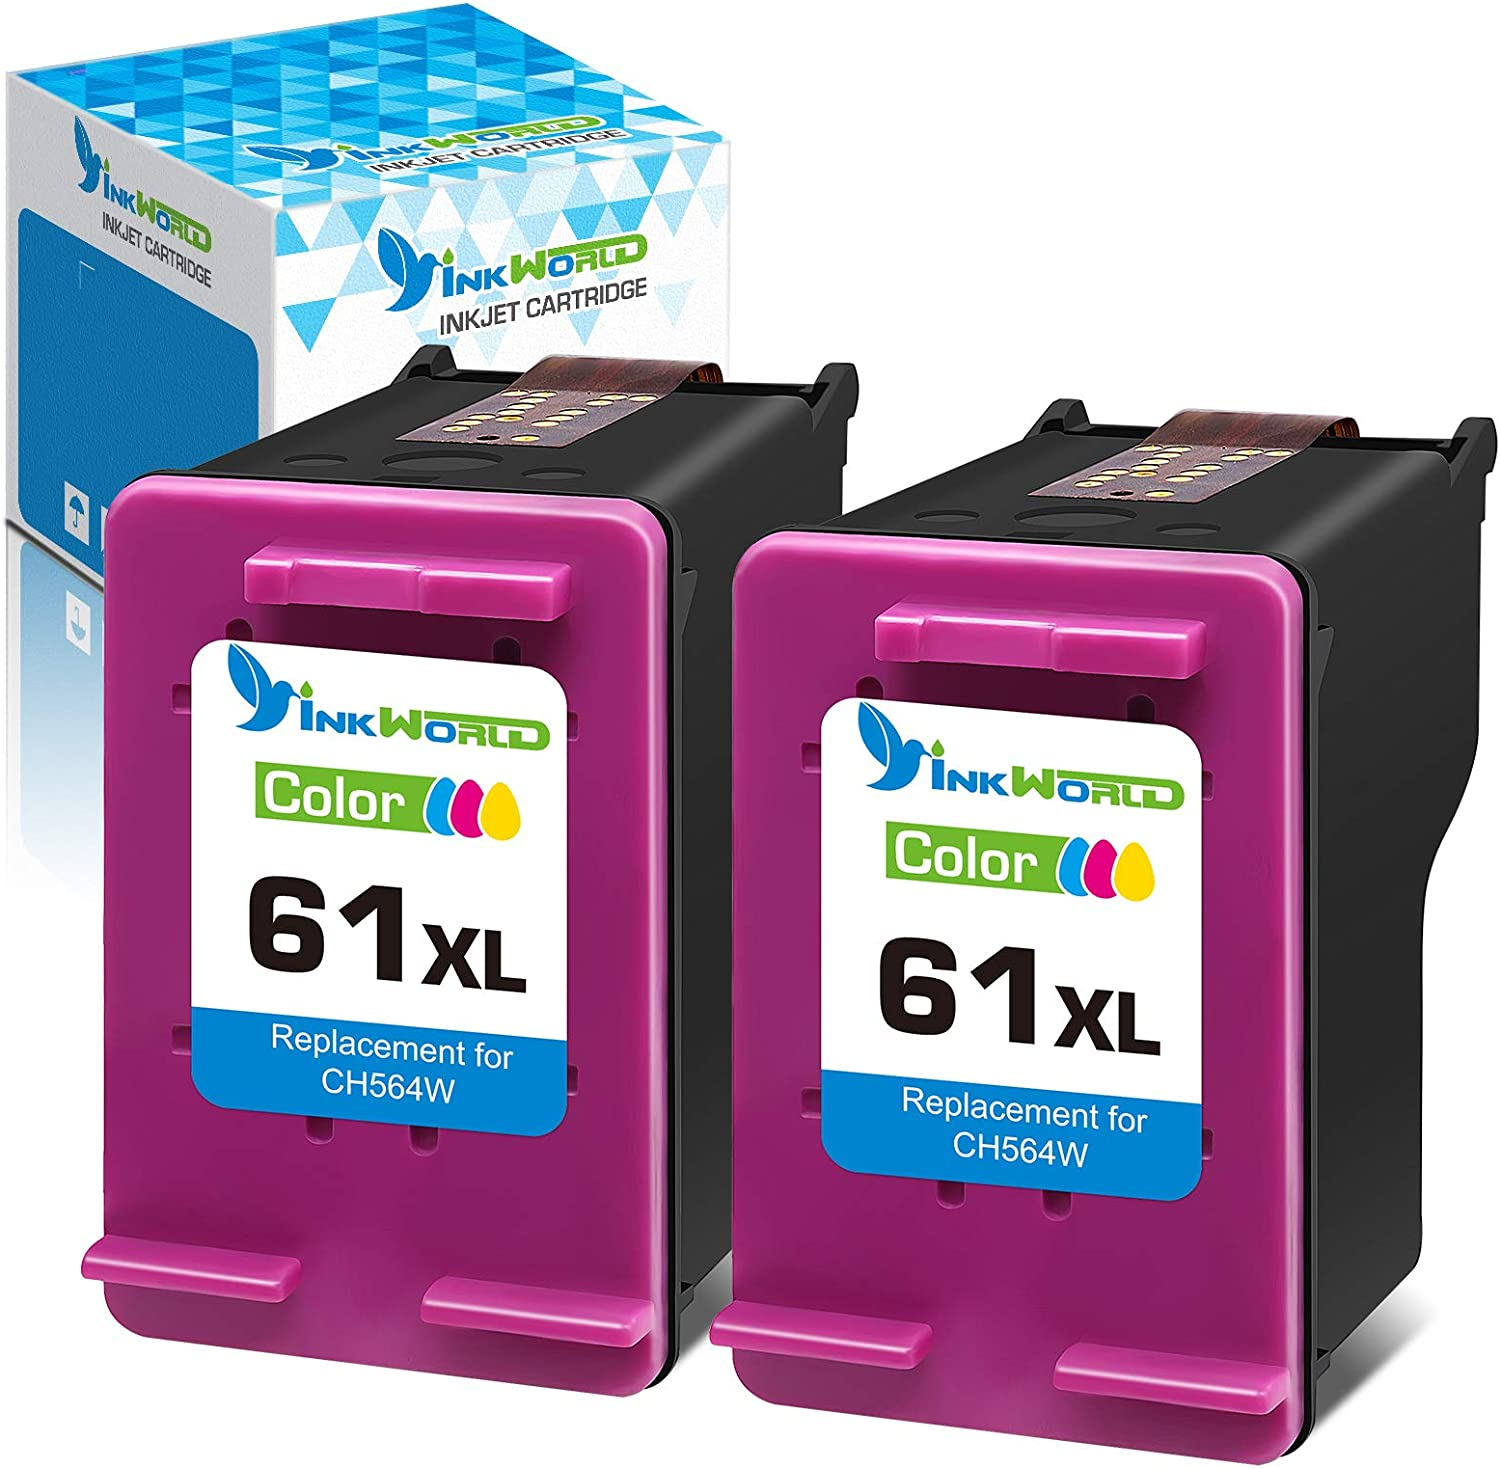 InkWorld Remanufactured 61XL Ink Cartridge Replacement for HP 61 Twin Color Used for Envy 4500 4502 5530 DeskJet 2512 1512 2542 2540 2544 3000 3052a 1055 3051a 2548 OfficeJet 4630 Printer (2 TriColor)